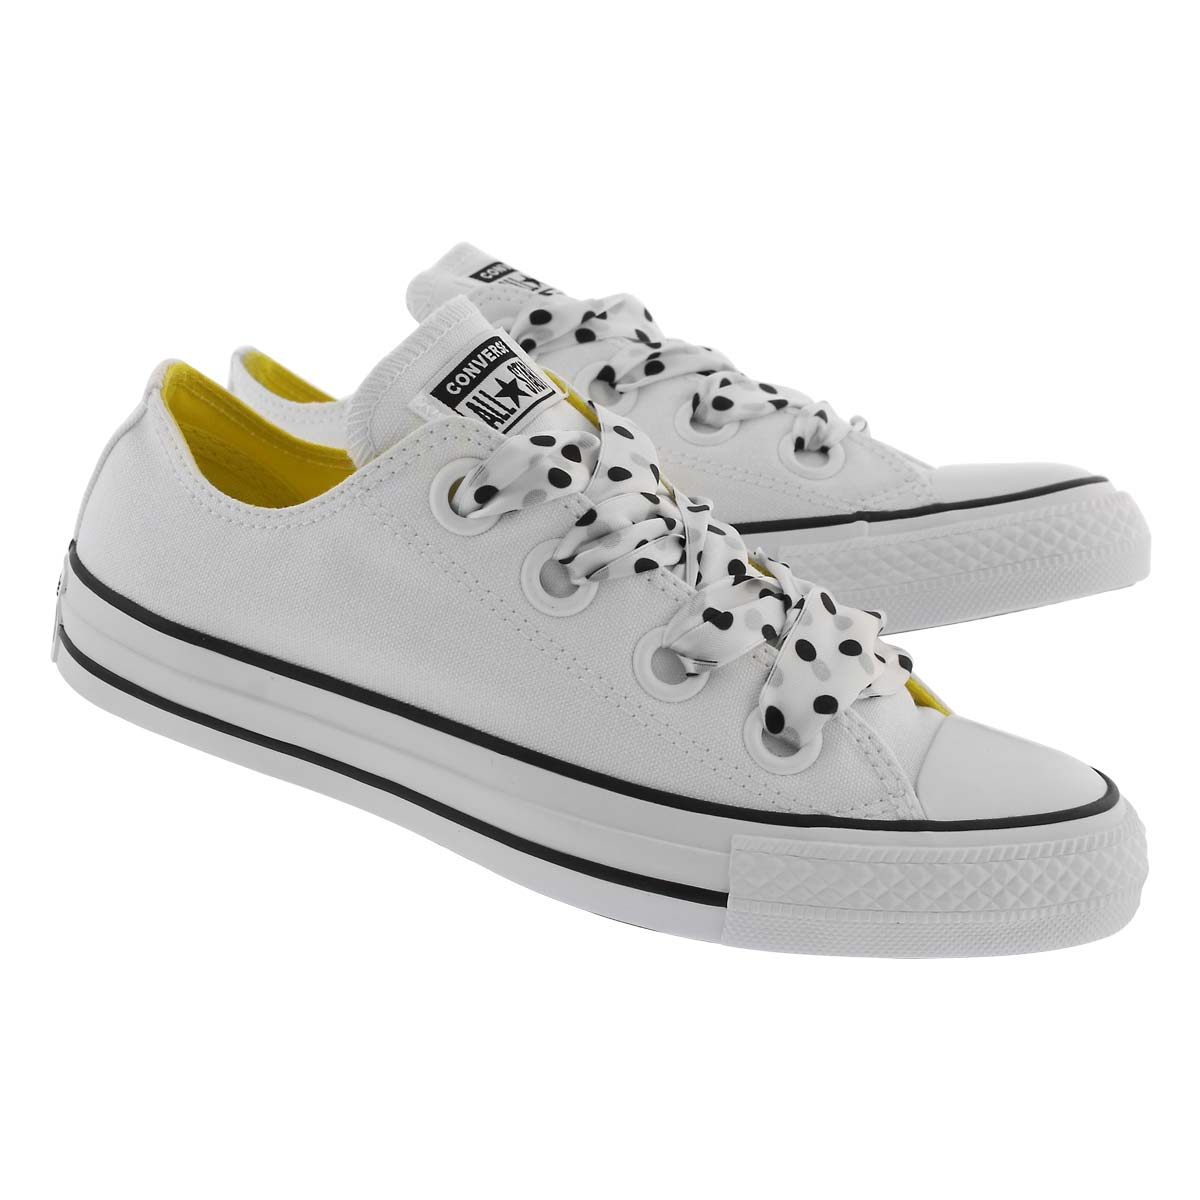 Lds CT A/S Big Eyelets wht/blk sneaker